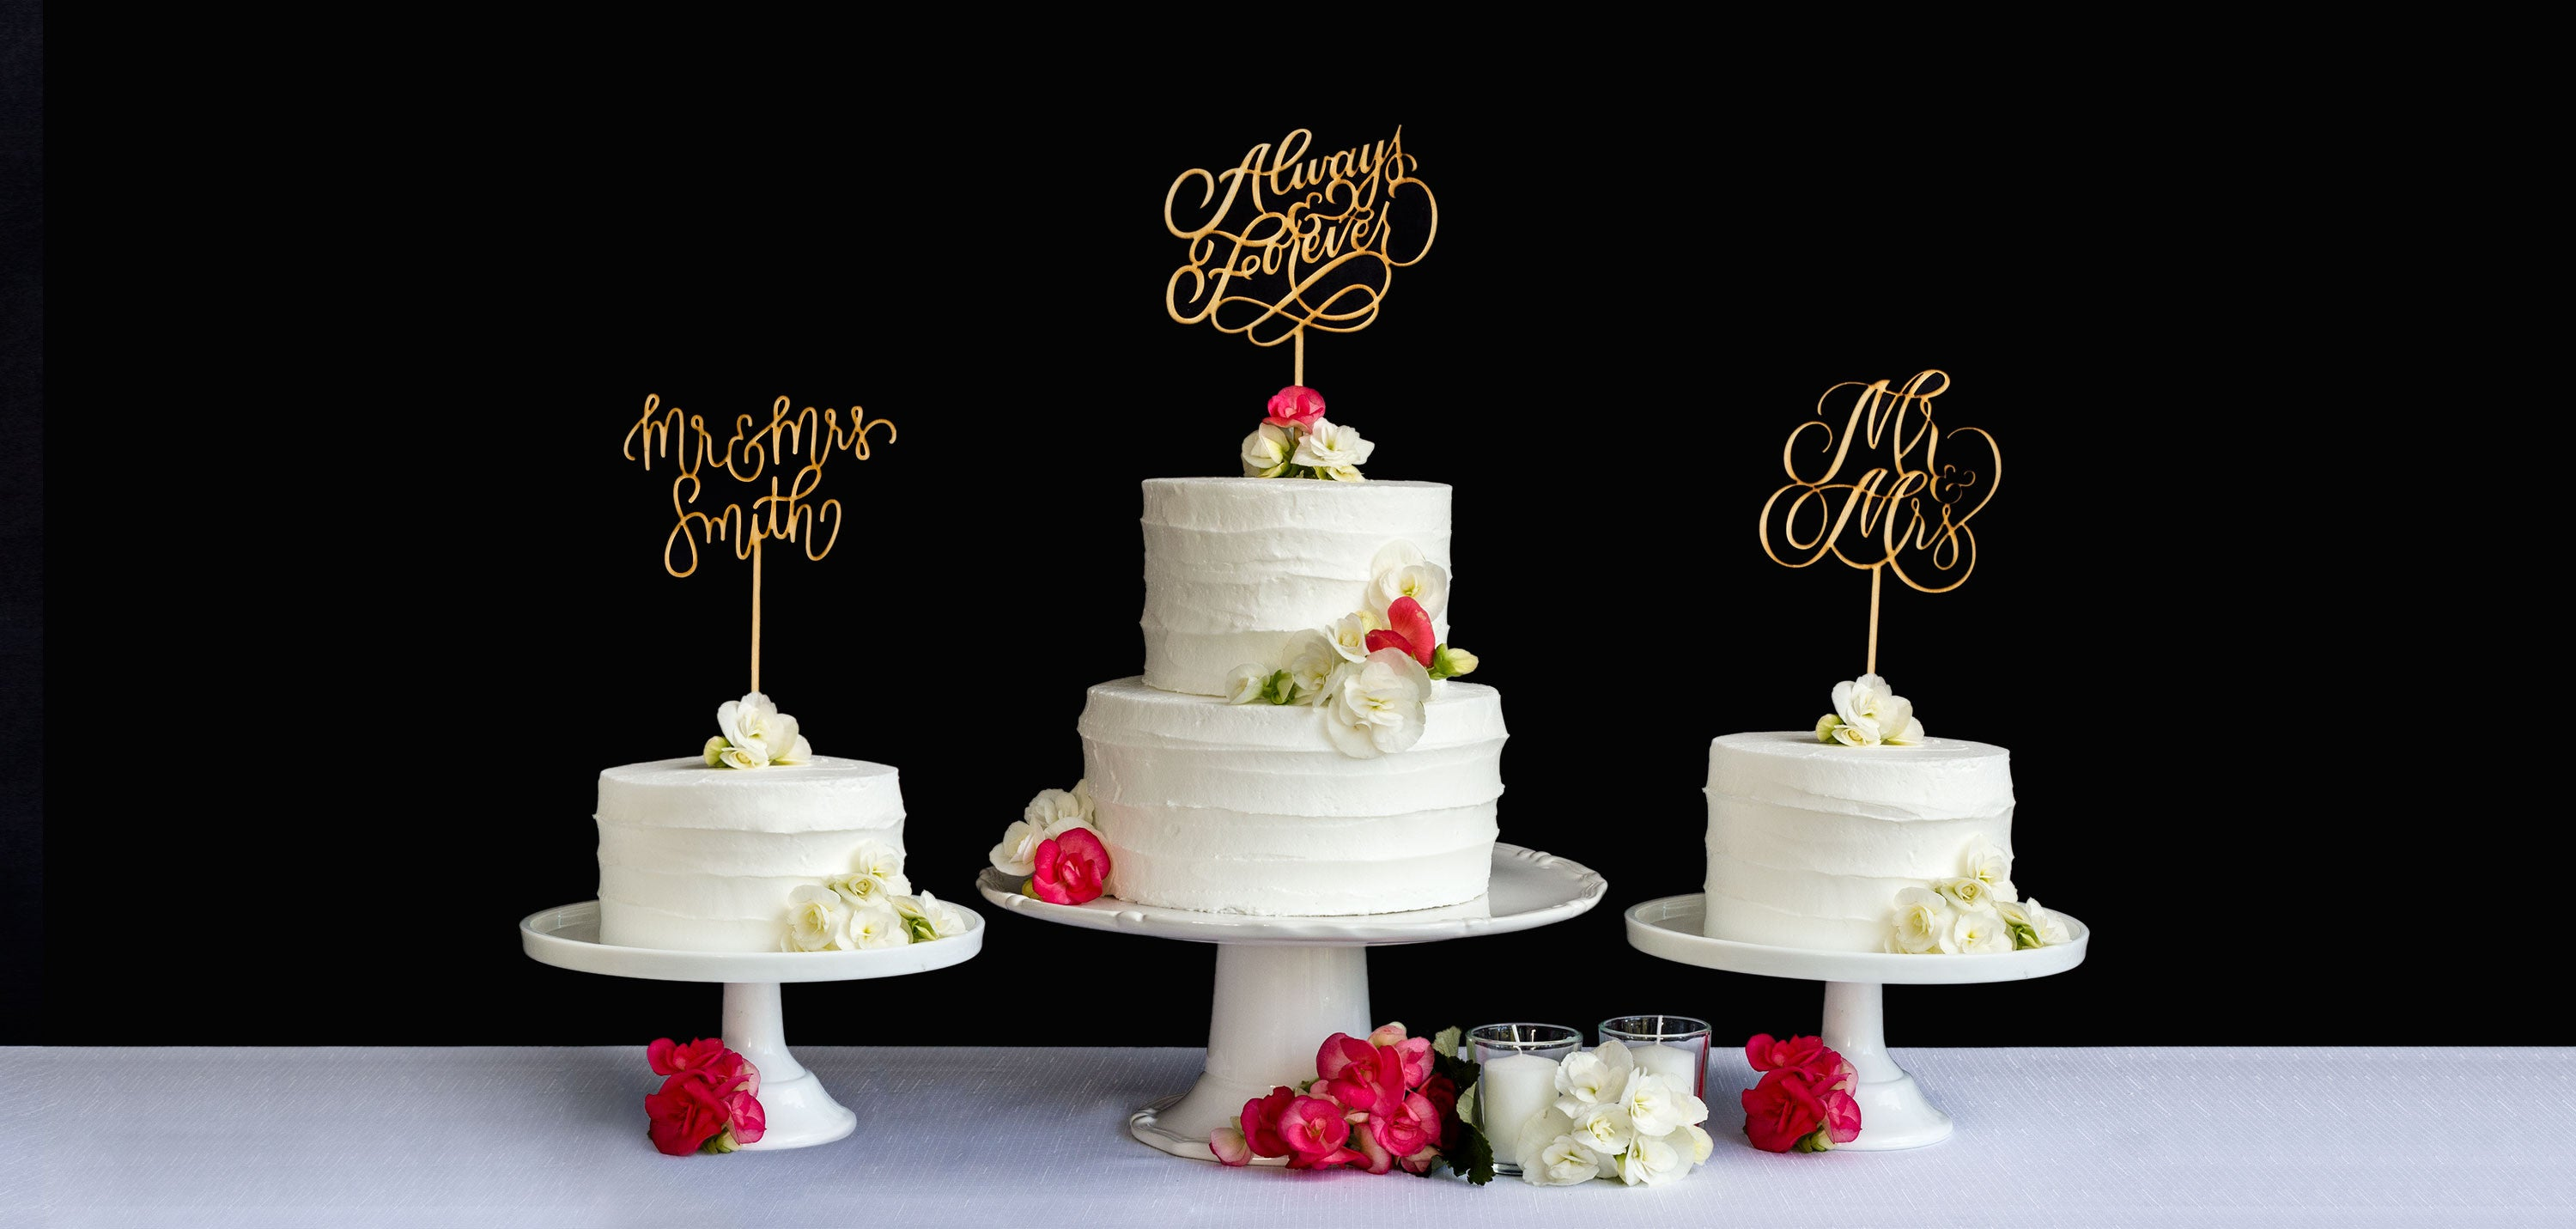 Honey & Crisp artisanal wedding cake toppers